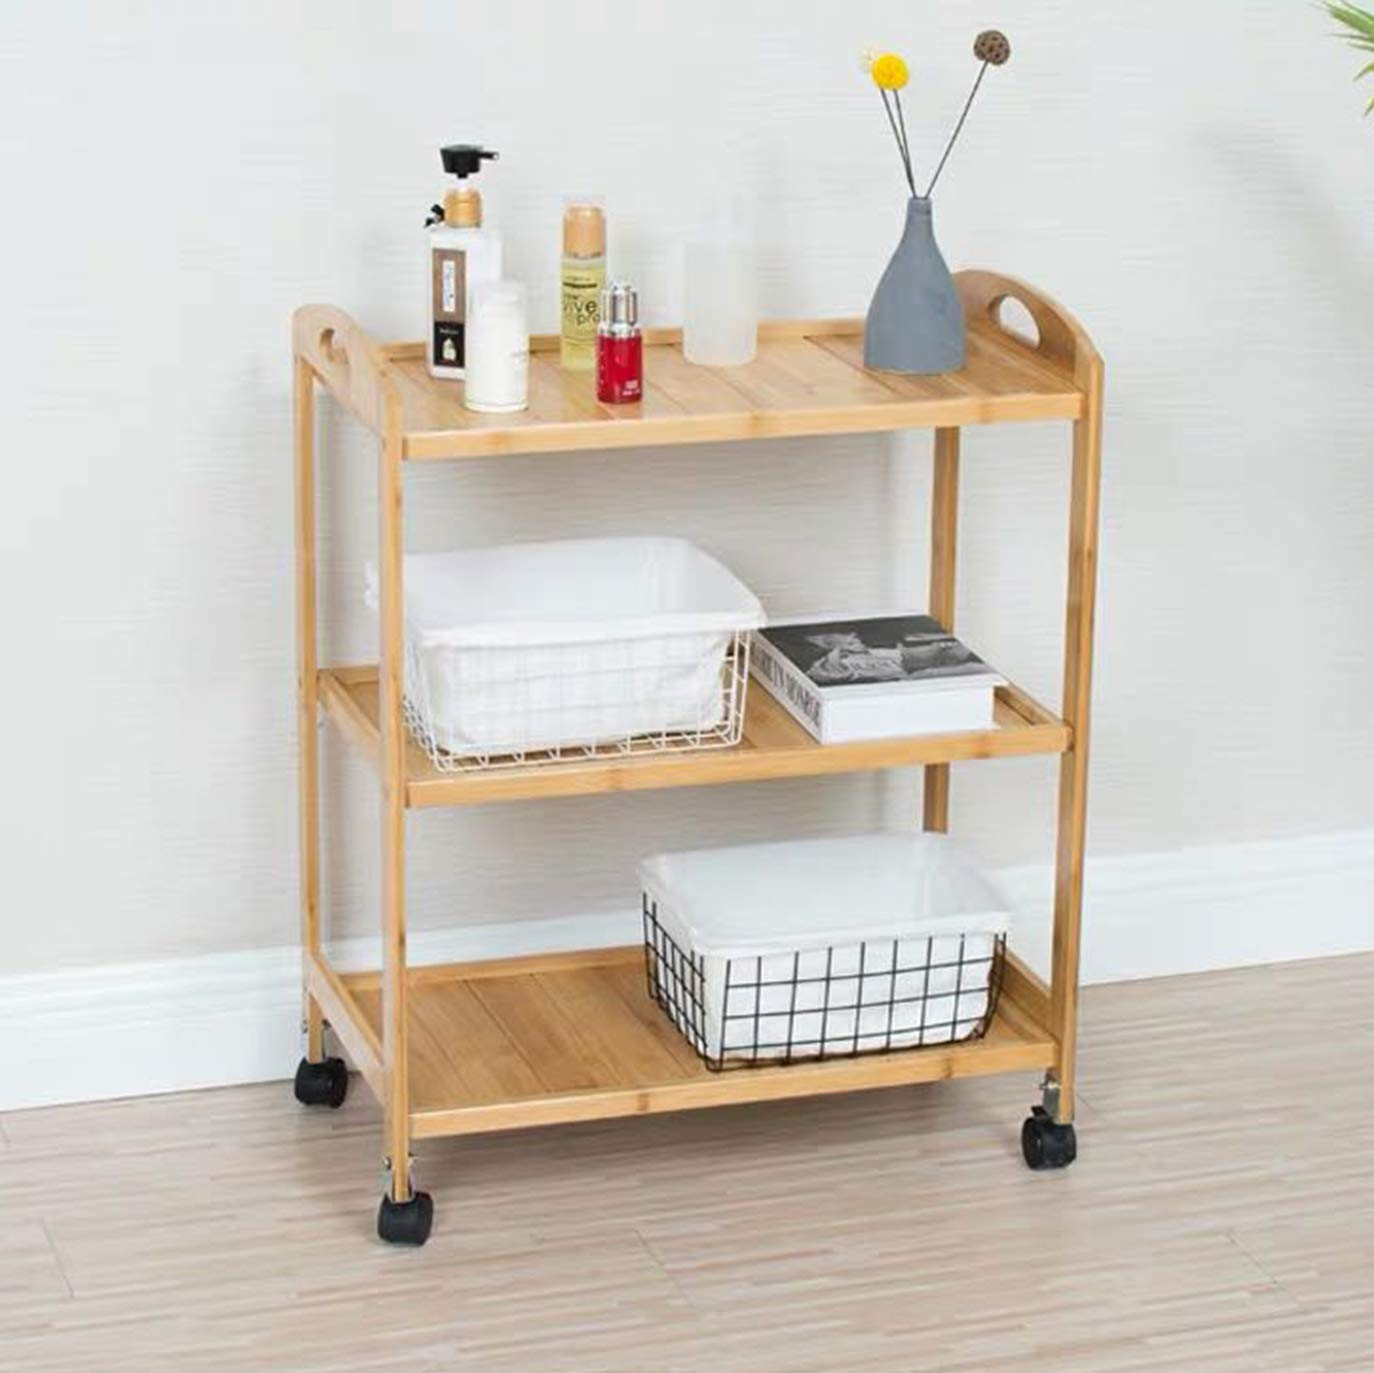 MBQQ Bamboo 3-Tier Storage Kitchen Cart Serving Bar Cart Island with Wheels,Rolling Bar and Serving Cart,Move Storage Coffee/Wine Island Shelf,Bathroom Shelves by MBQQ